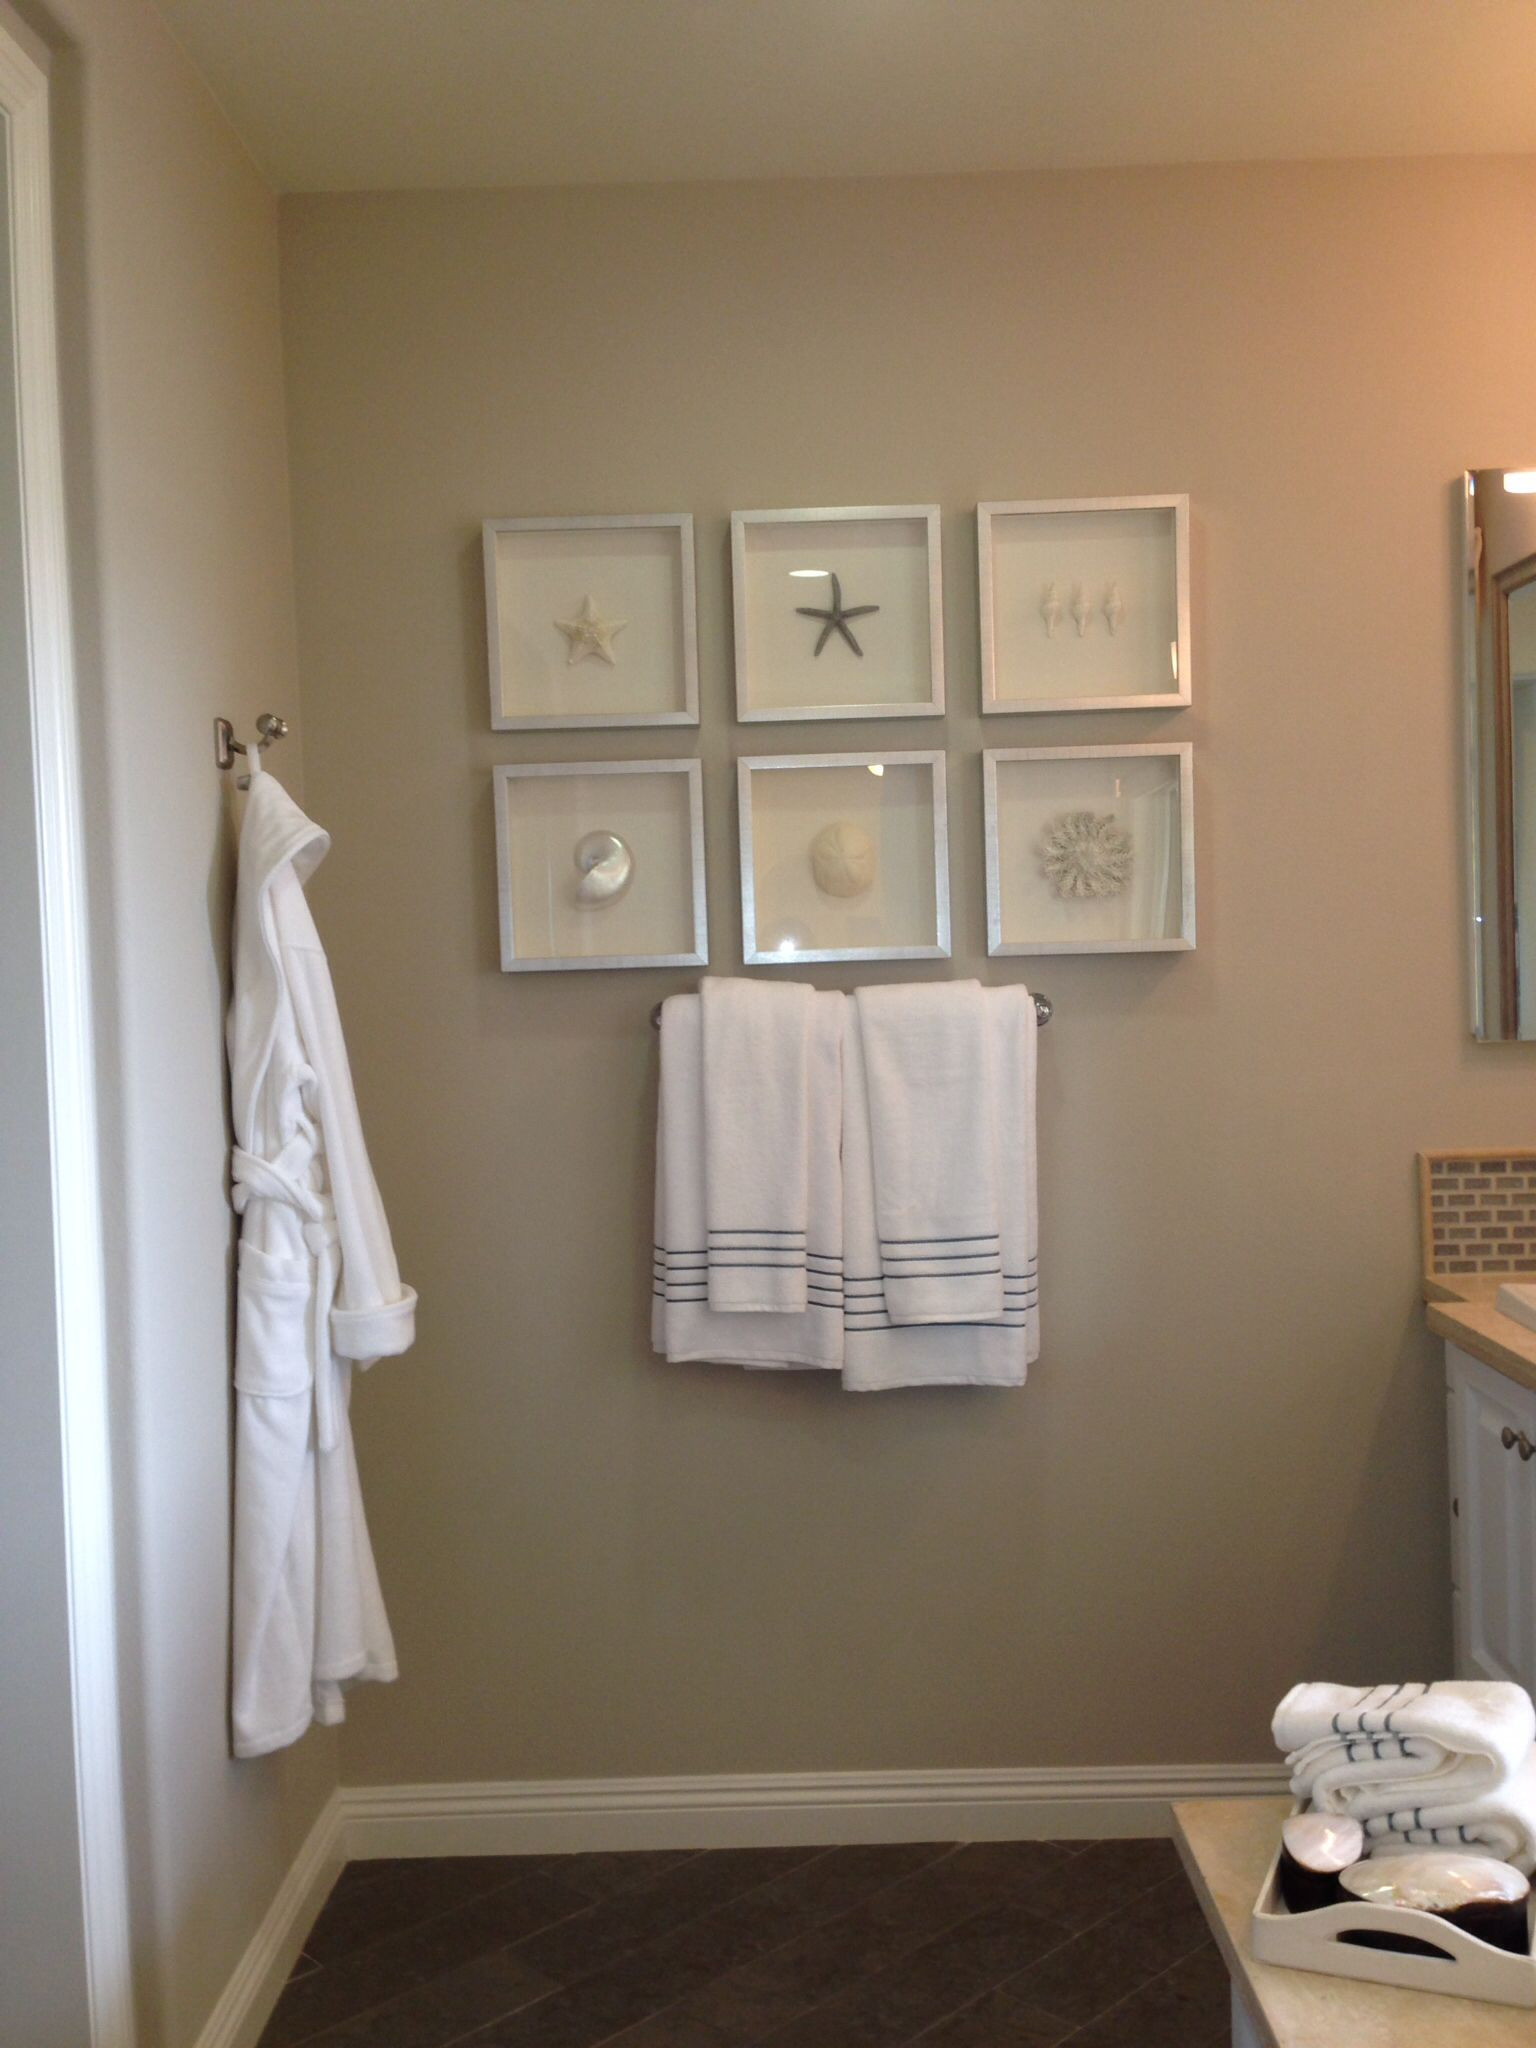 Bathroom Wall Decorating Ideas Unique Wall Decor Ideas for Small Bedroom Living Room Spaces